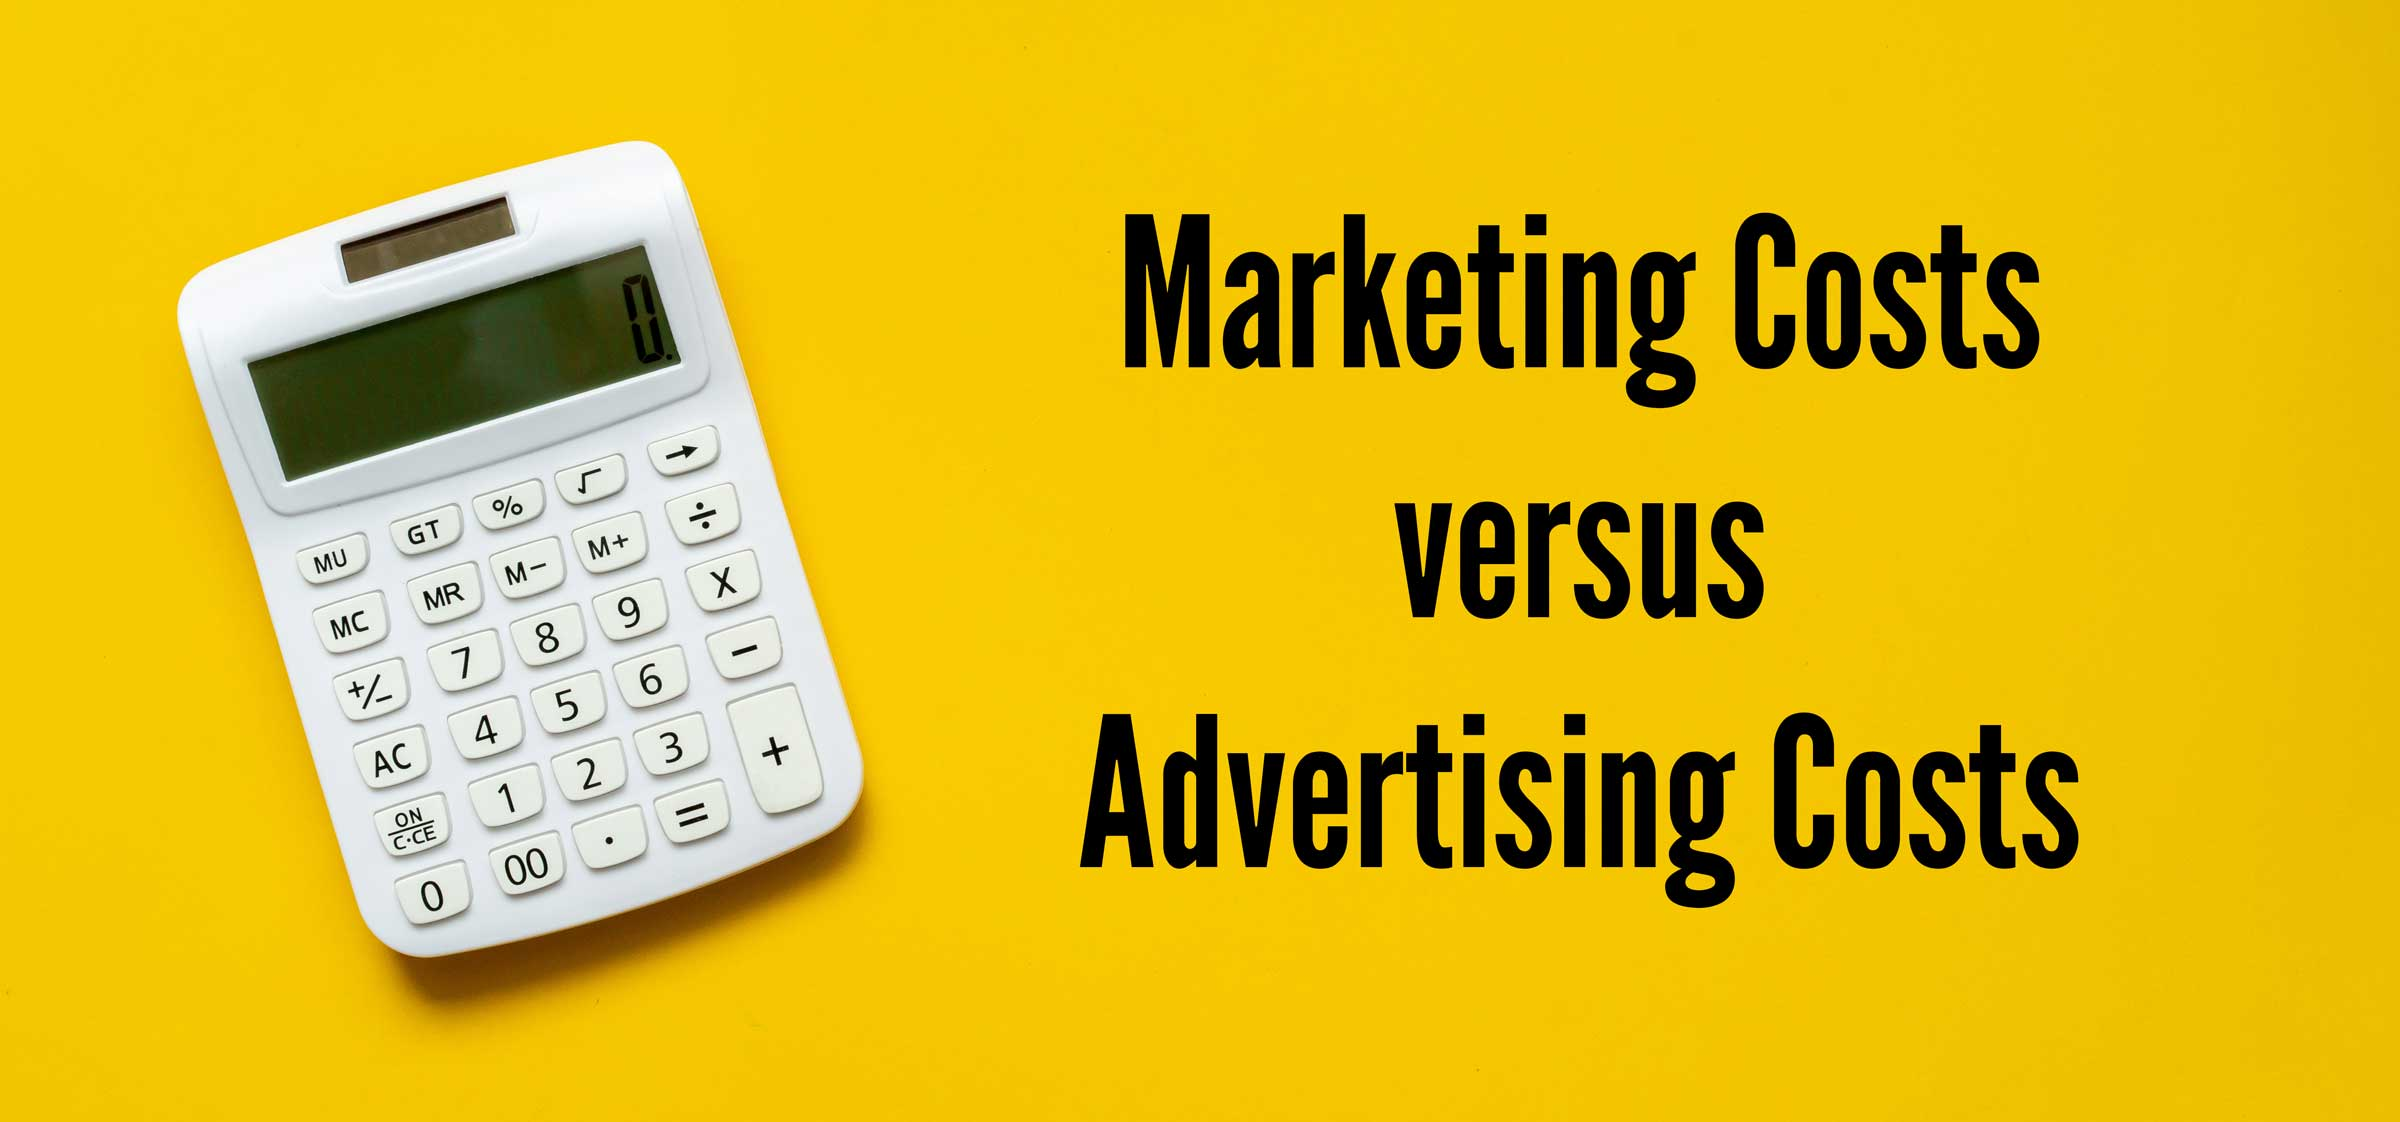 Marketing Costs vs Advertising Costs